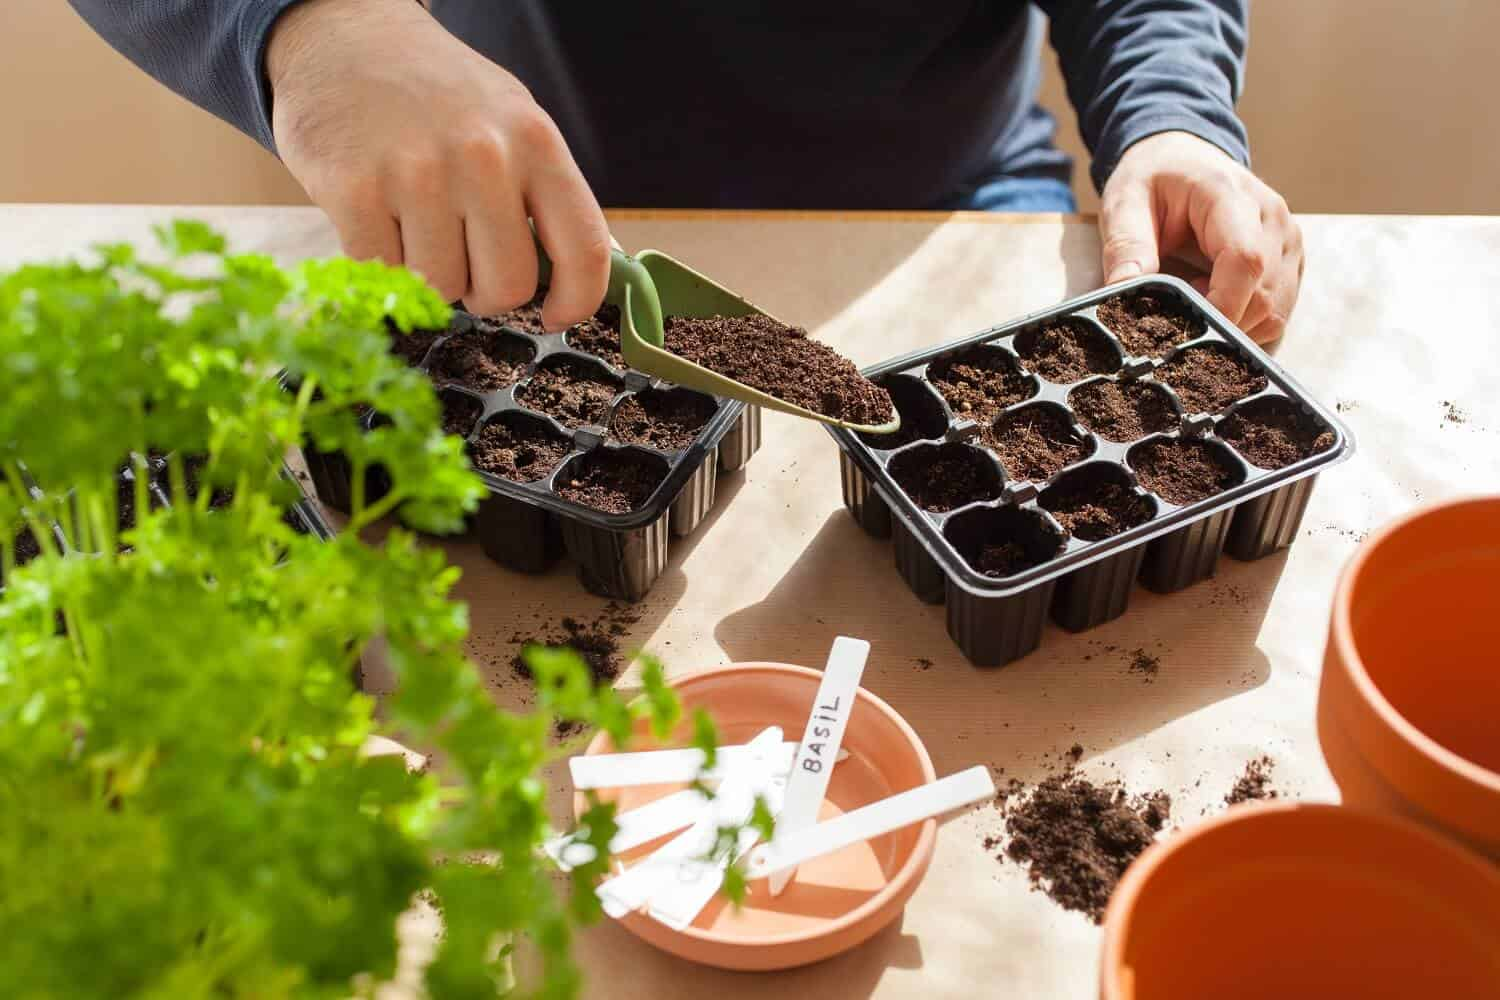 A Complete Guide on How to Sow Seeds Indoors